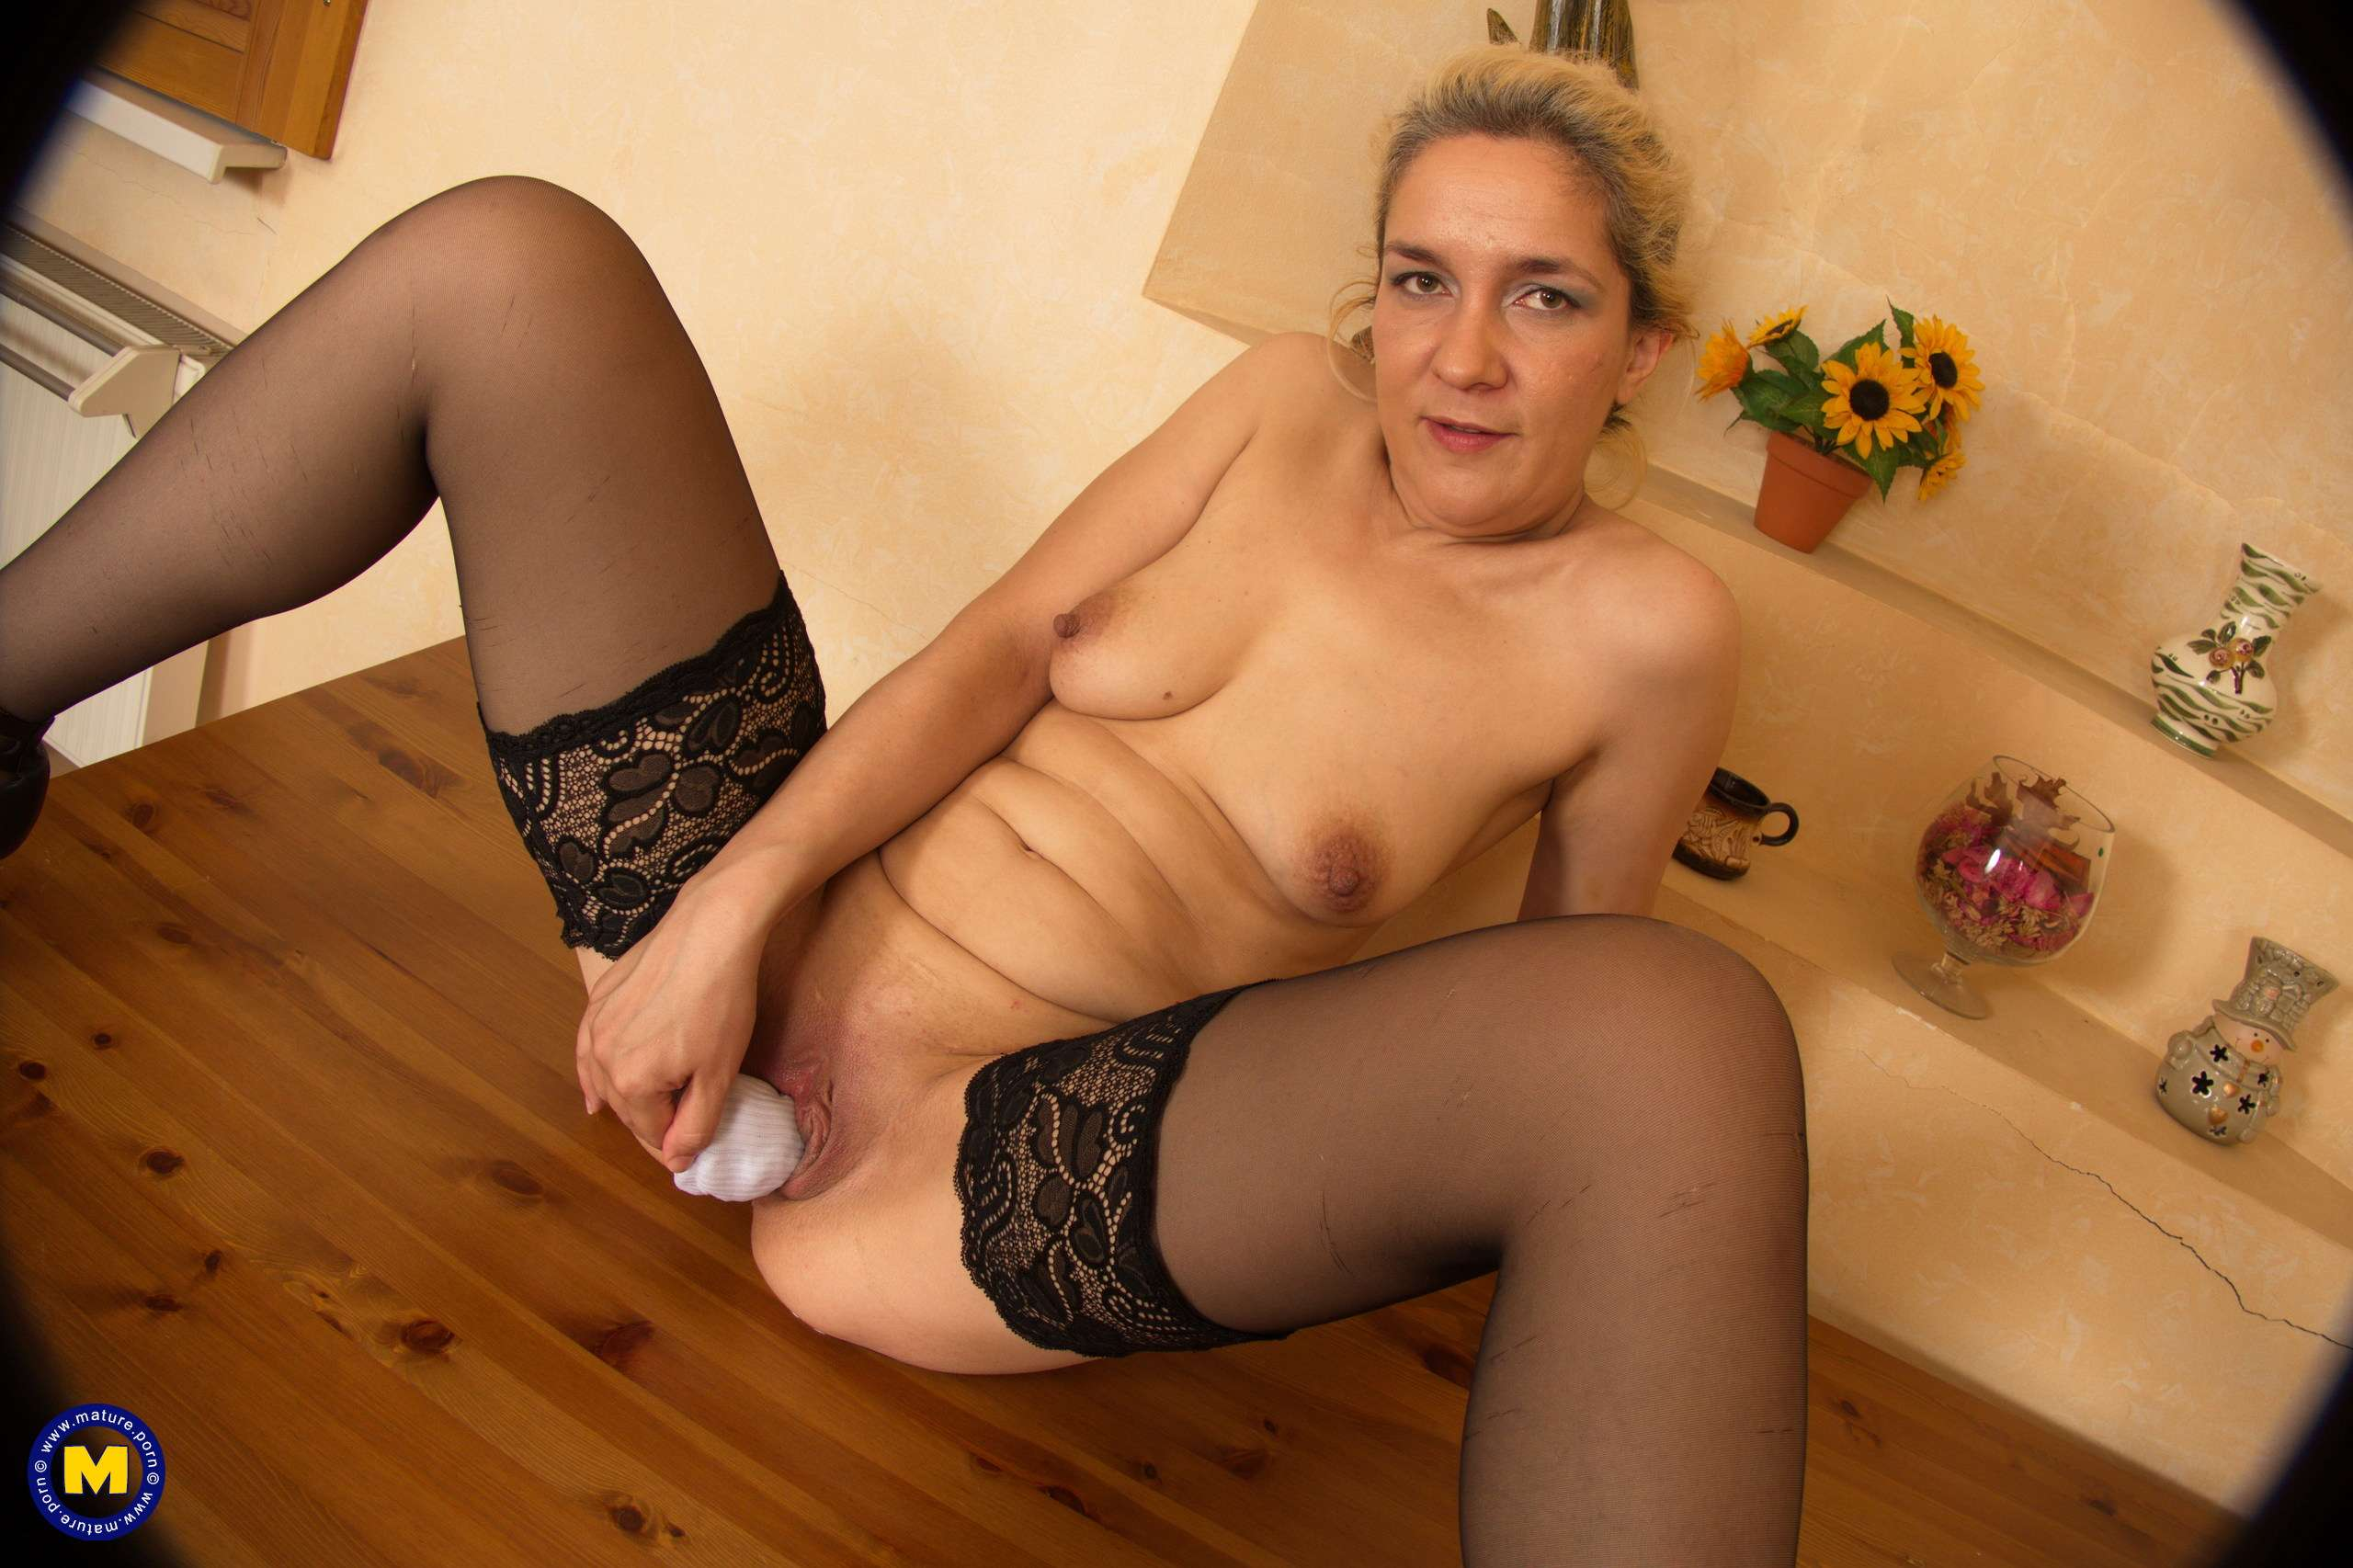 This housewife loves a good long dildo